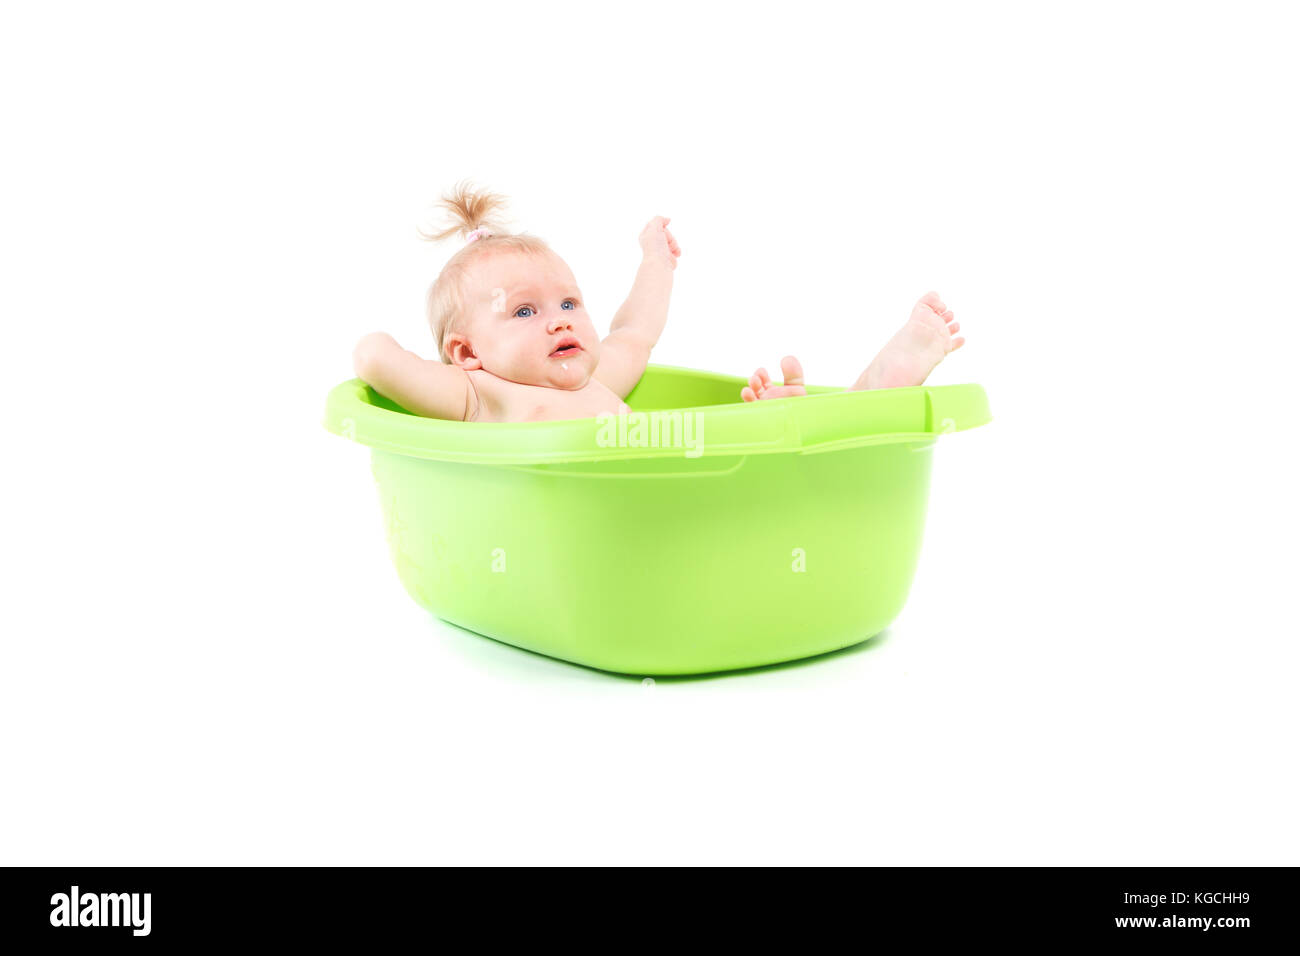 green baby shower stock photos green baby shower stock images alamy. Black Bedroom Furniture Sets. Home Design Ideas